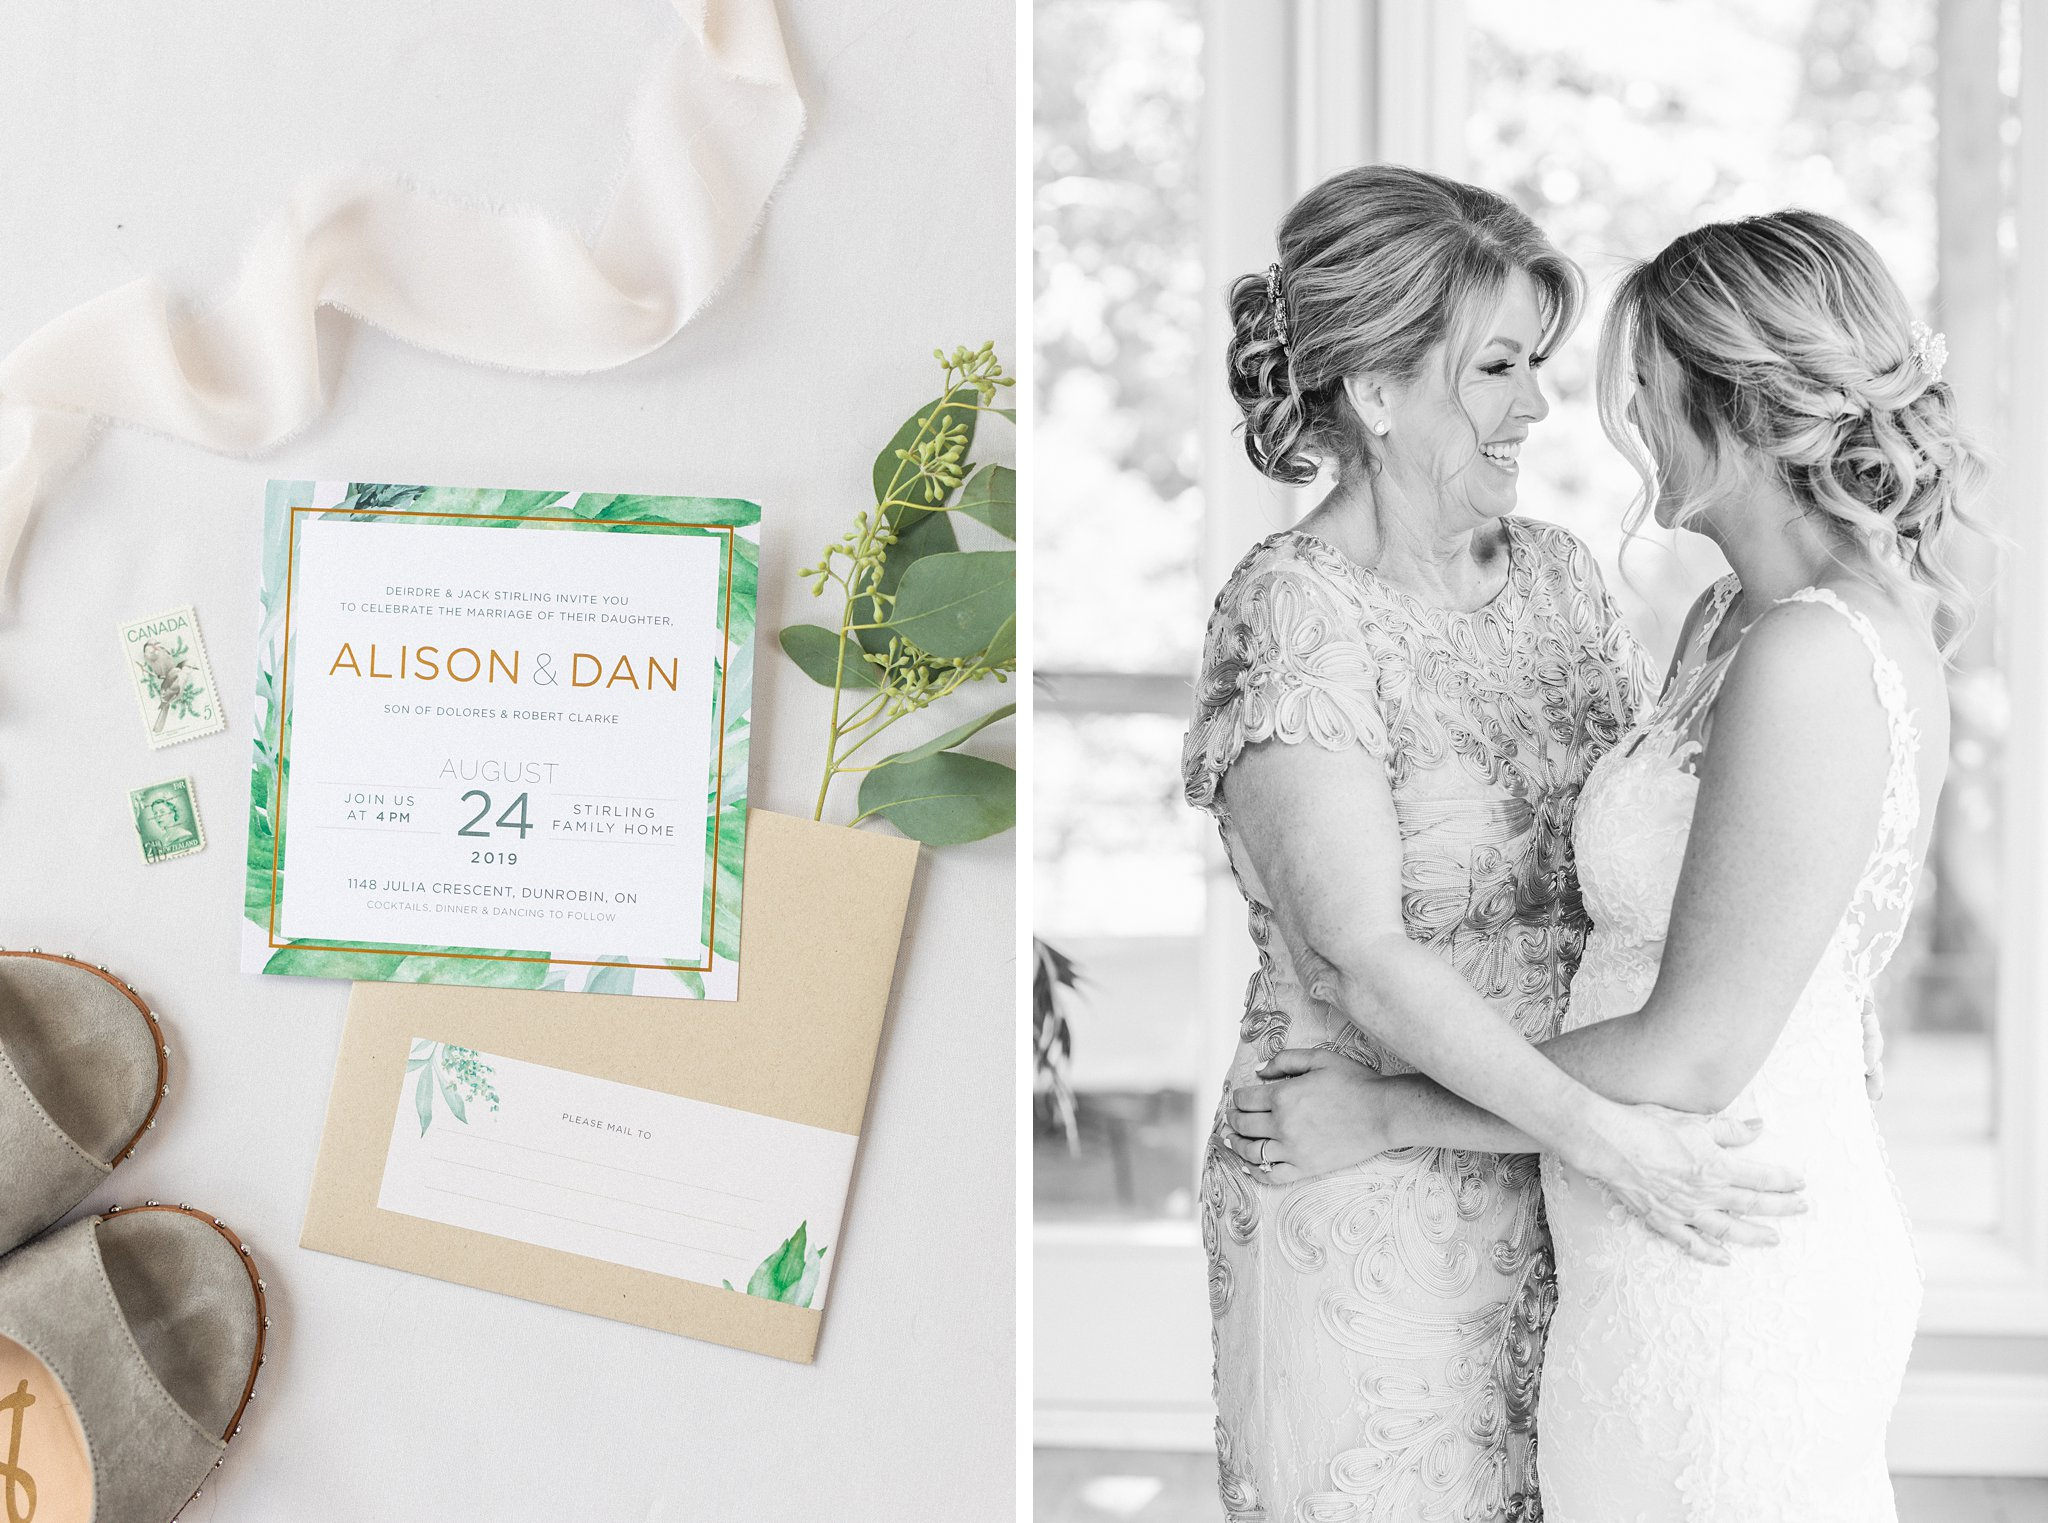 Wishtree Invites, Private Estate Wedding Photos, Amy Pinder Photography